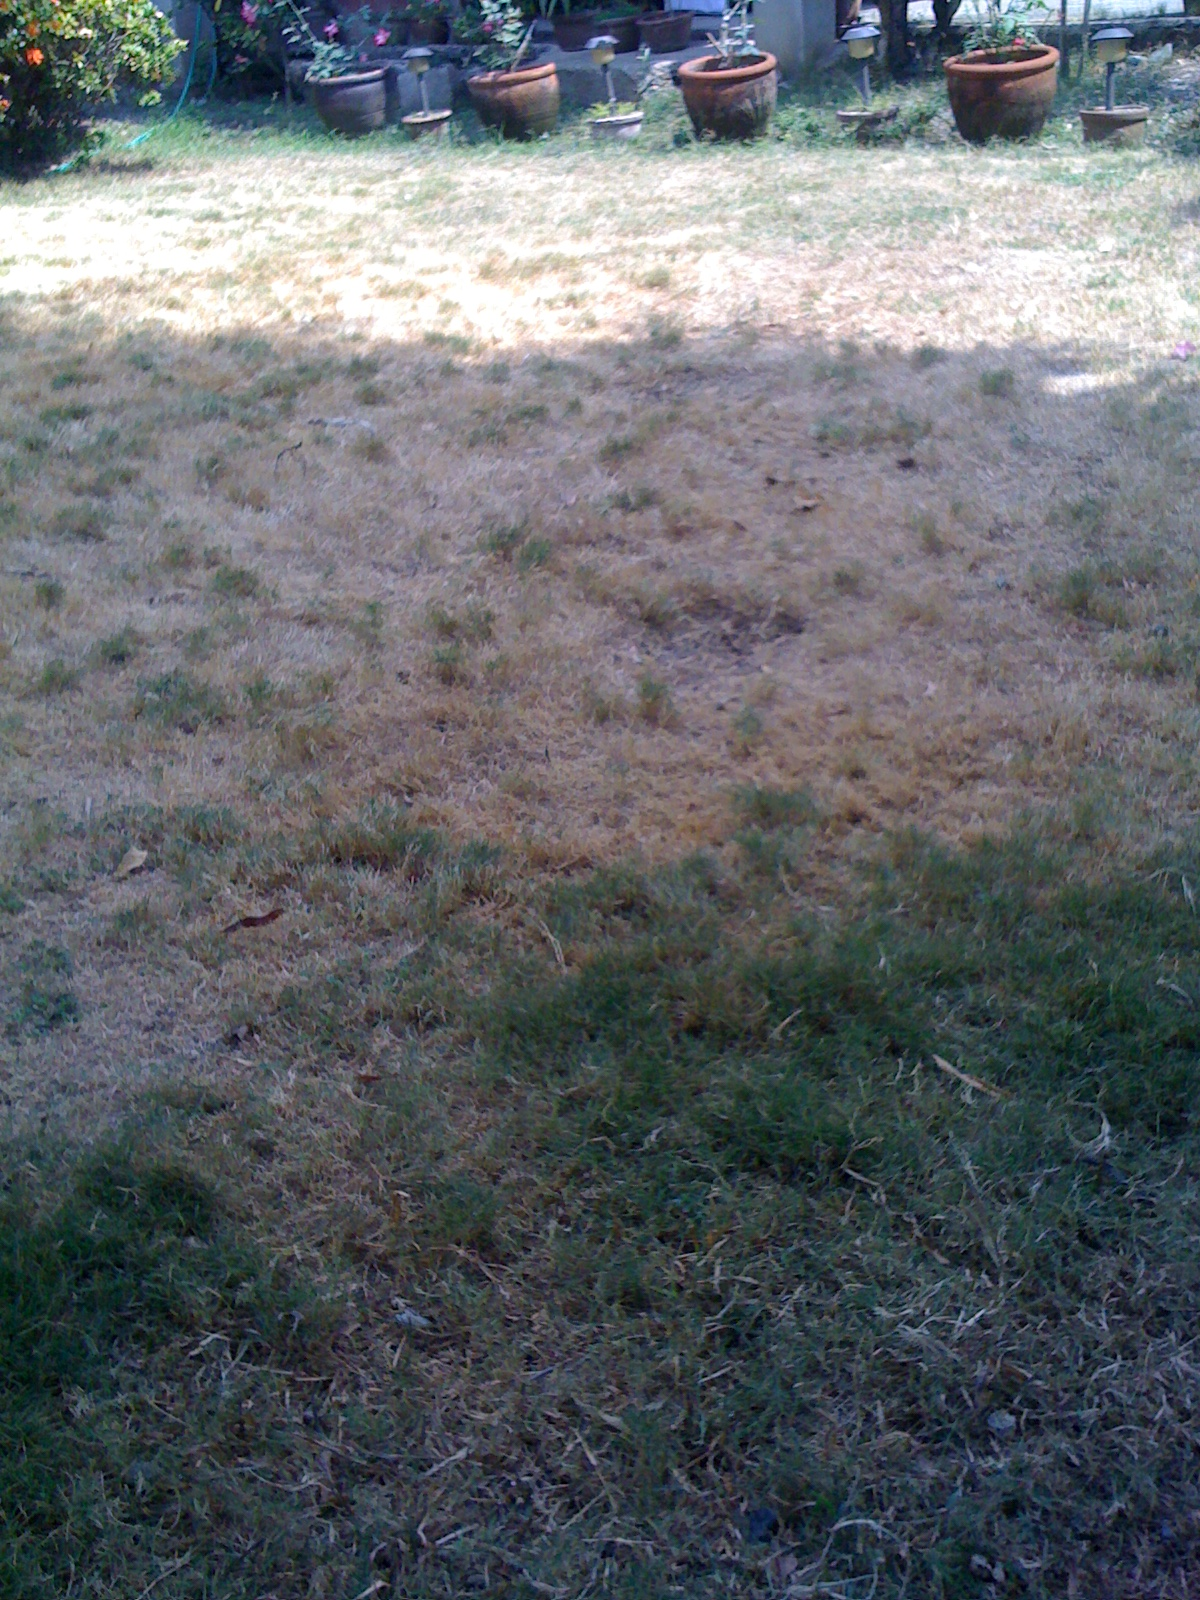 this is how our local govenment looked like during that Chinese mayor's administration--- dry!